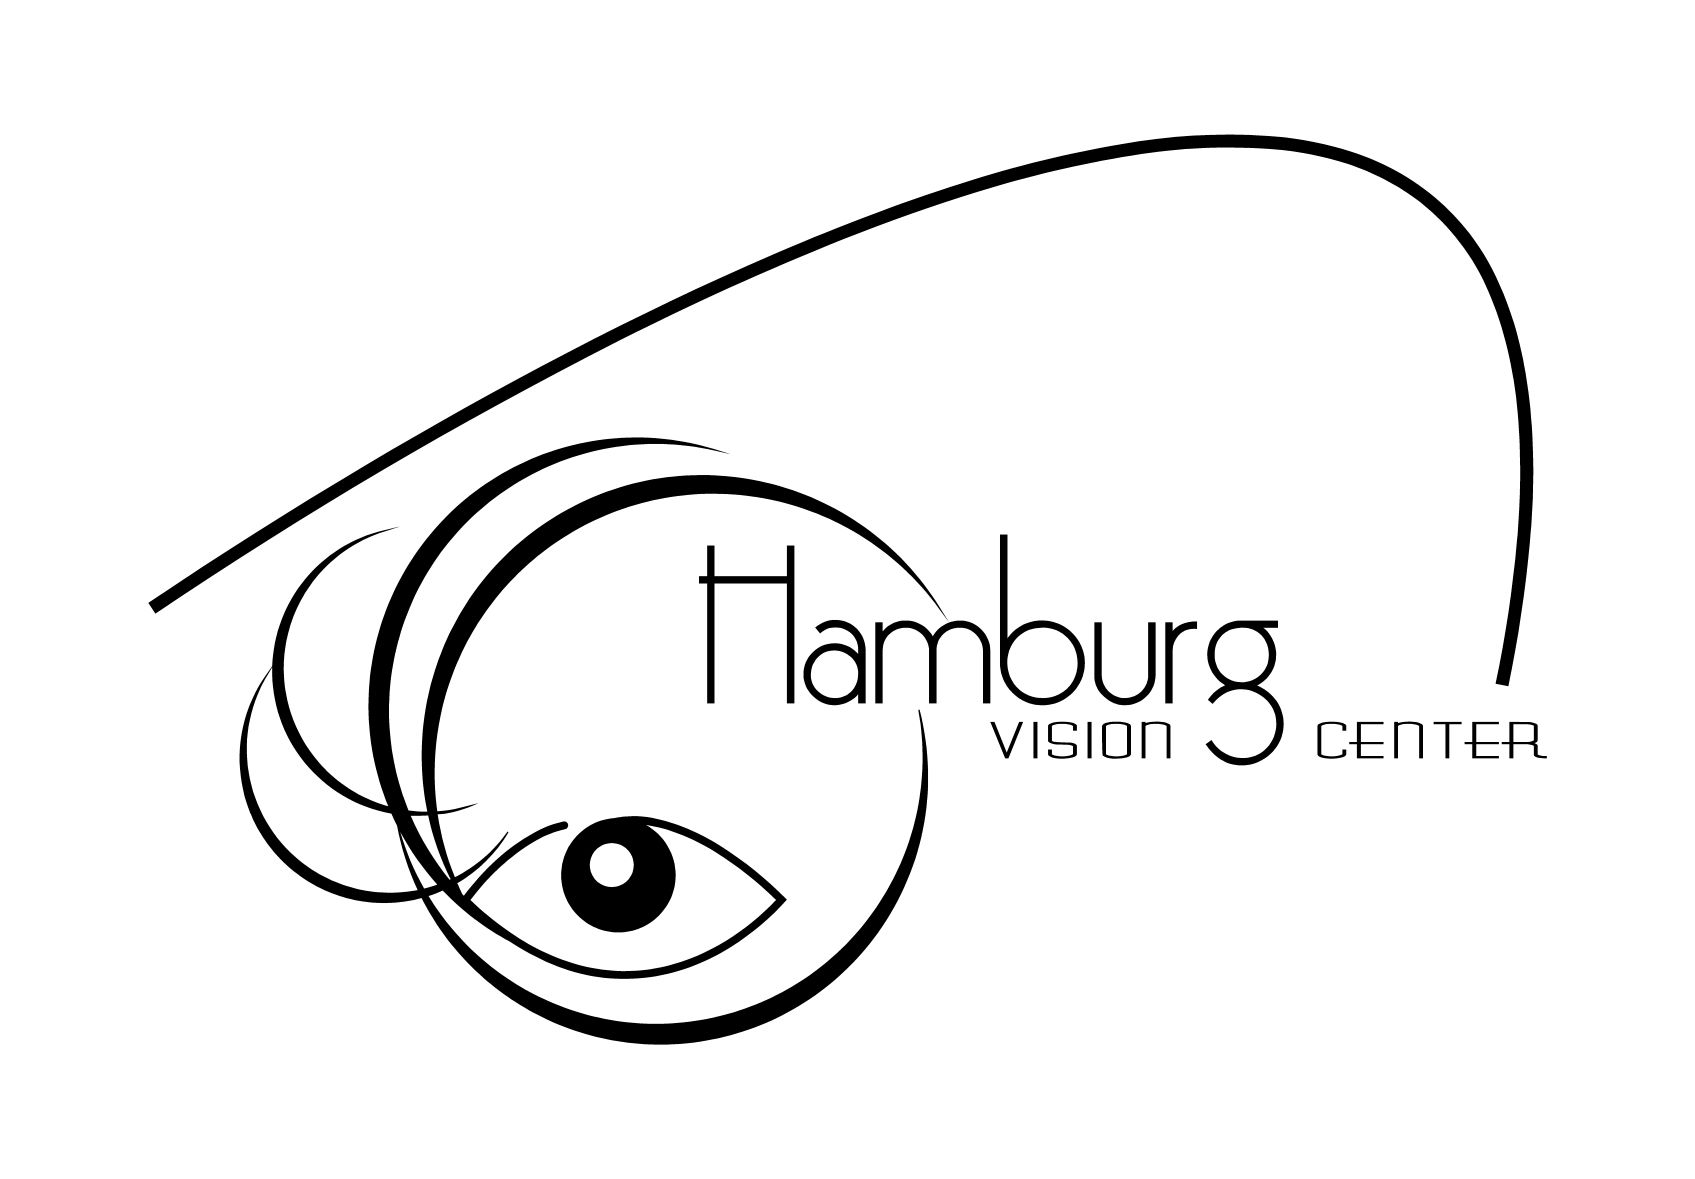 Hamburg Vision Center